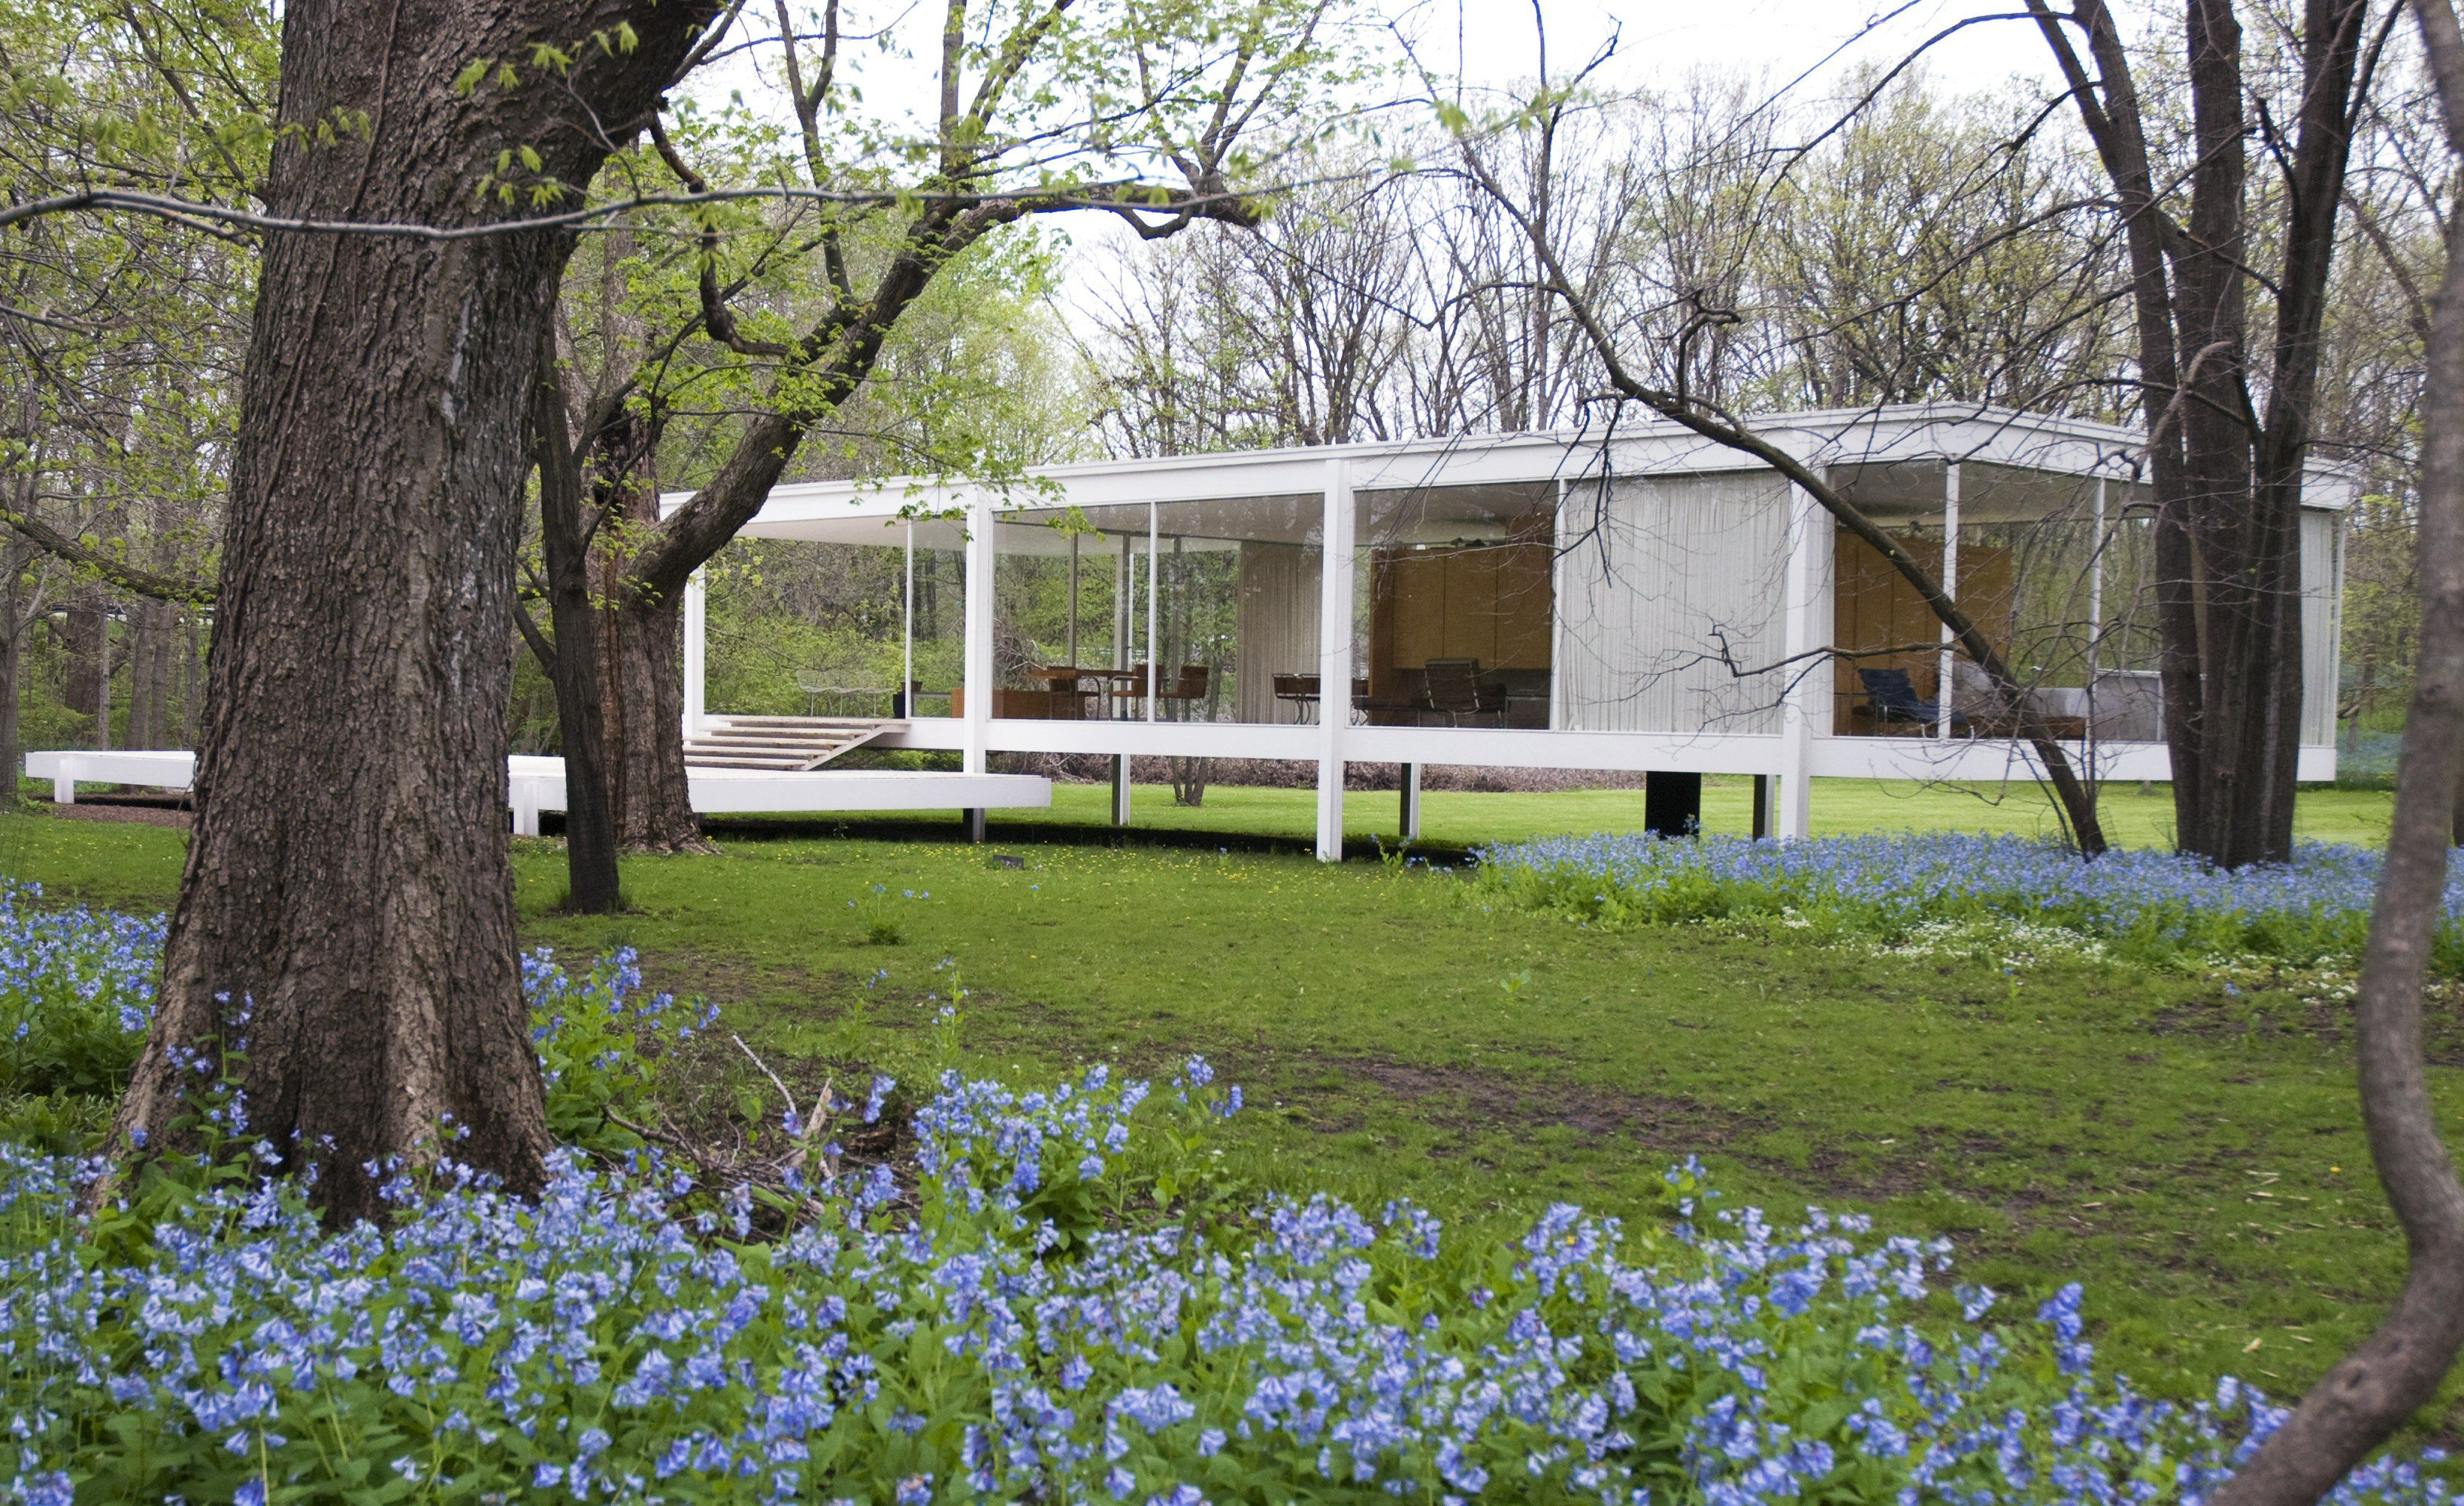 one story glass sided house raised from the ground on piers in rural setting amidst trees and blue flowers